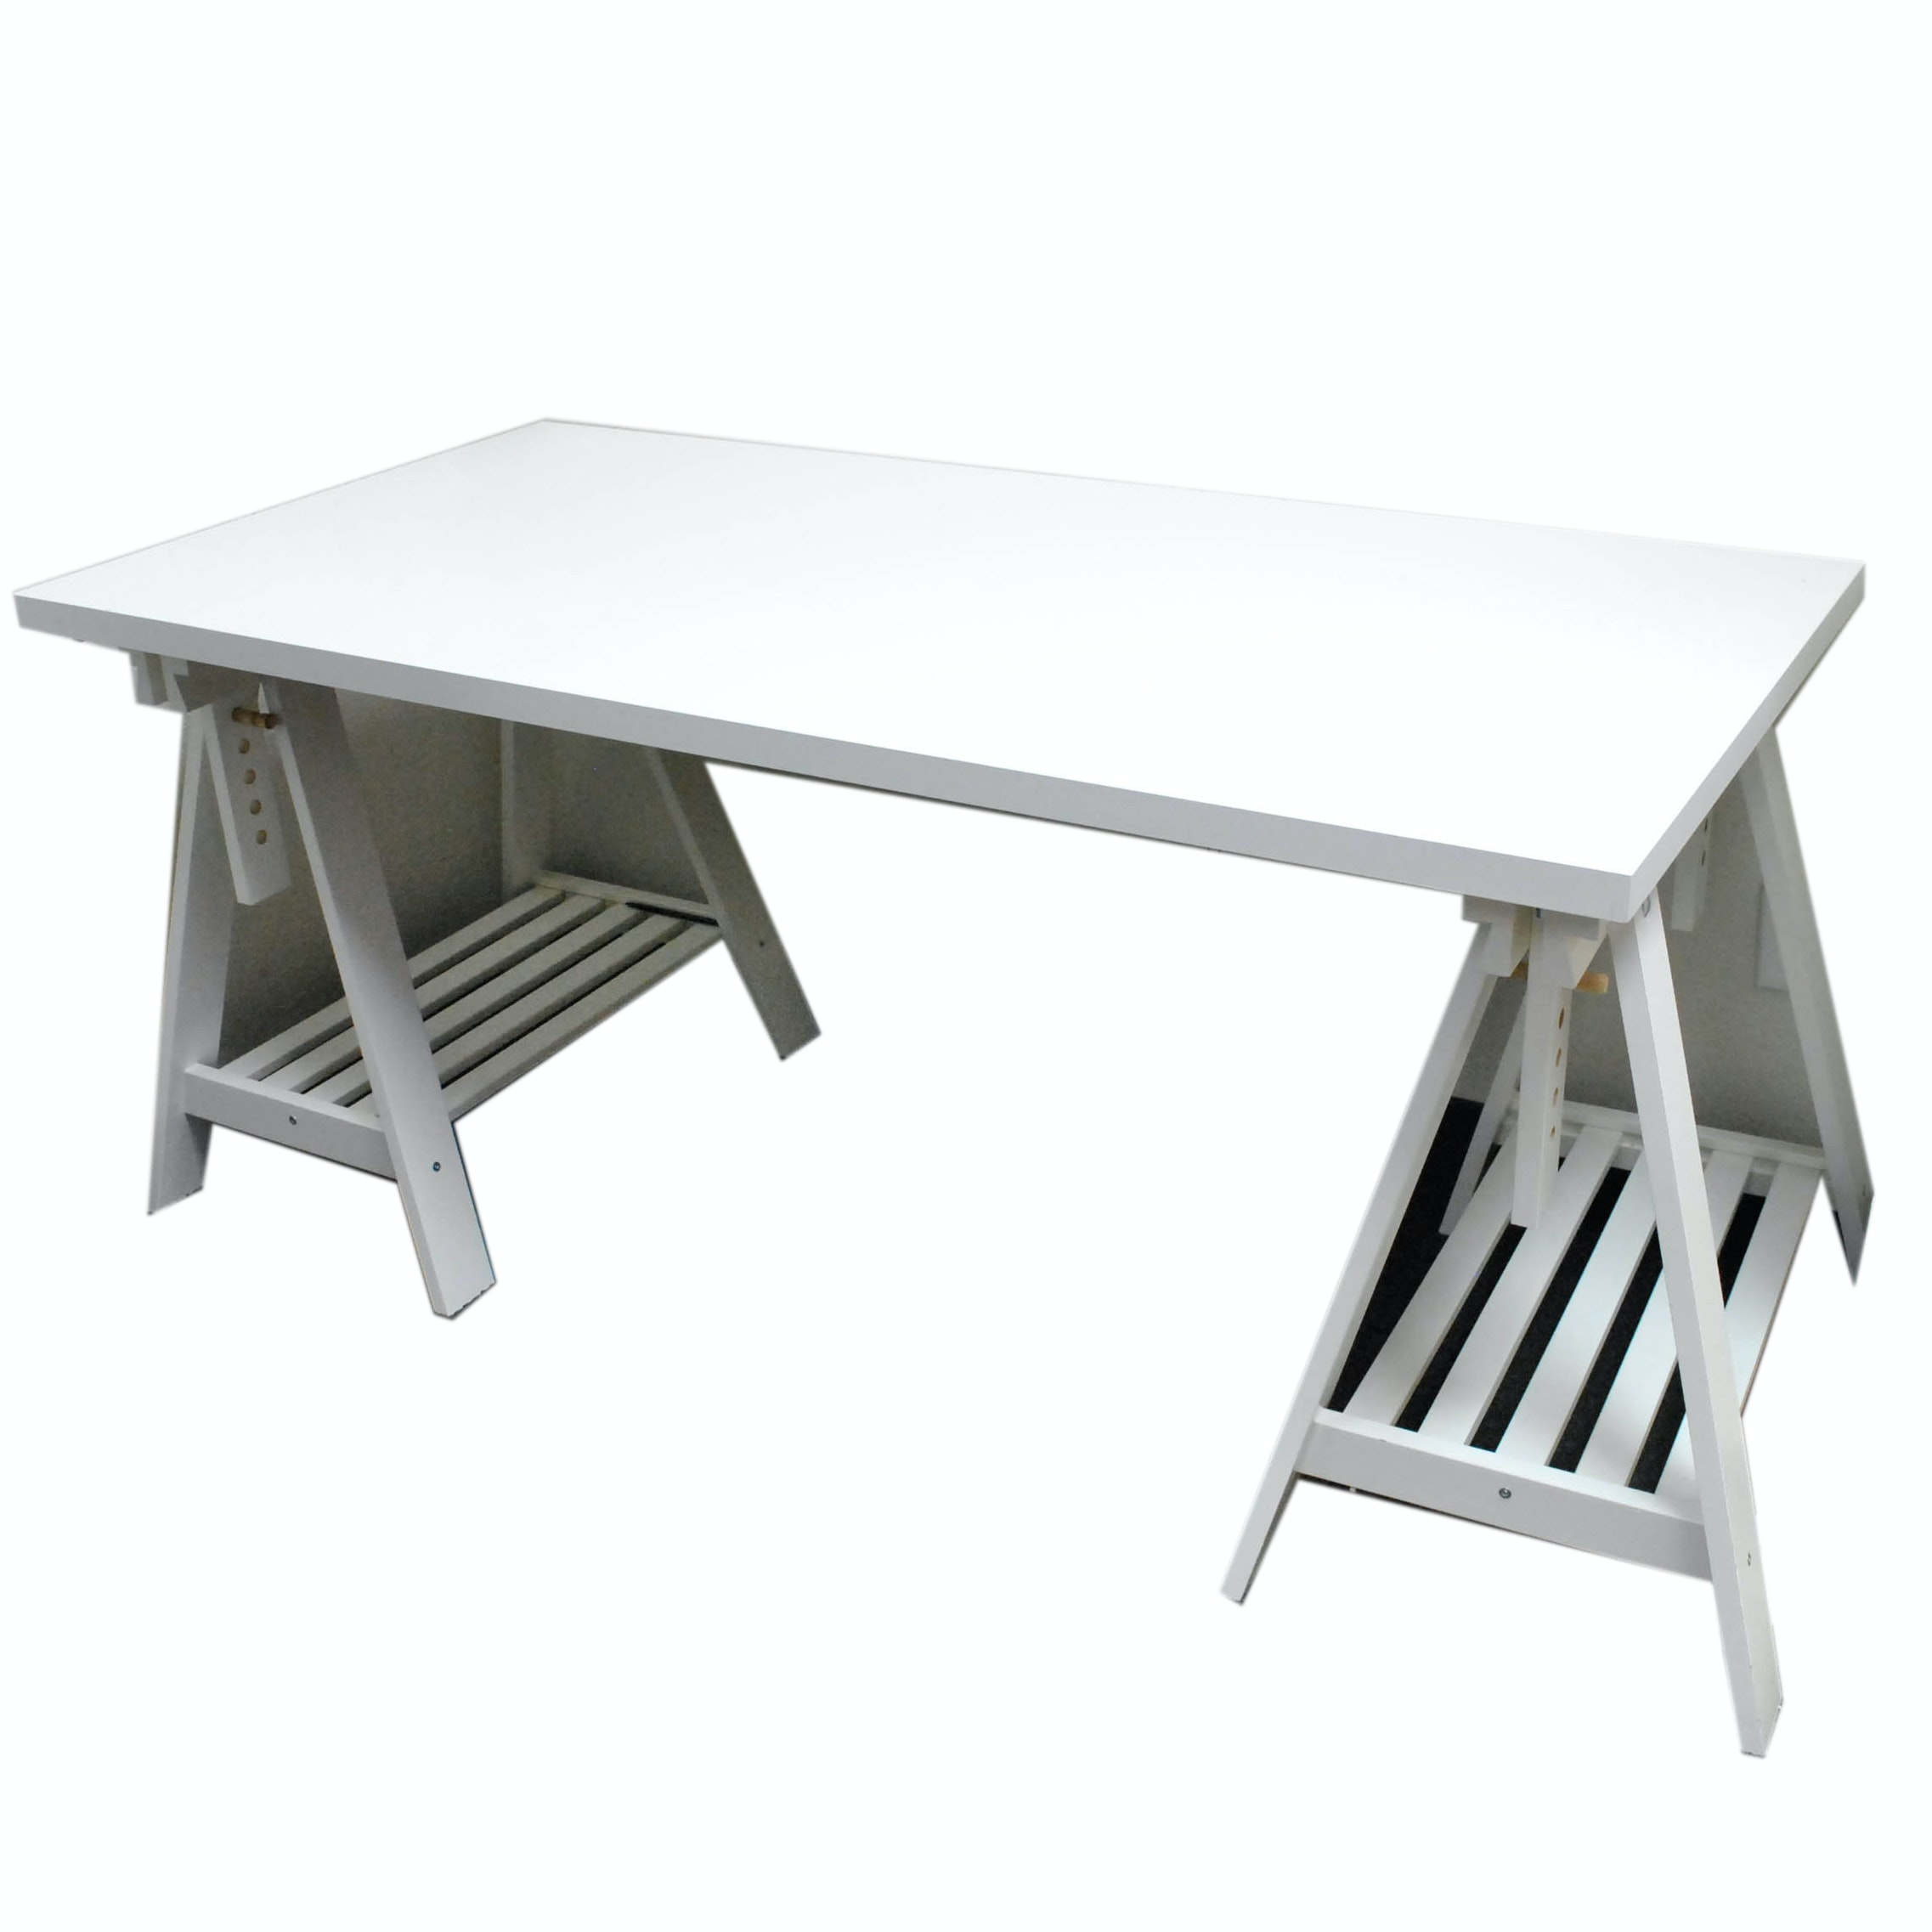 White Painted Drafting Table on Sawhorse Supports